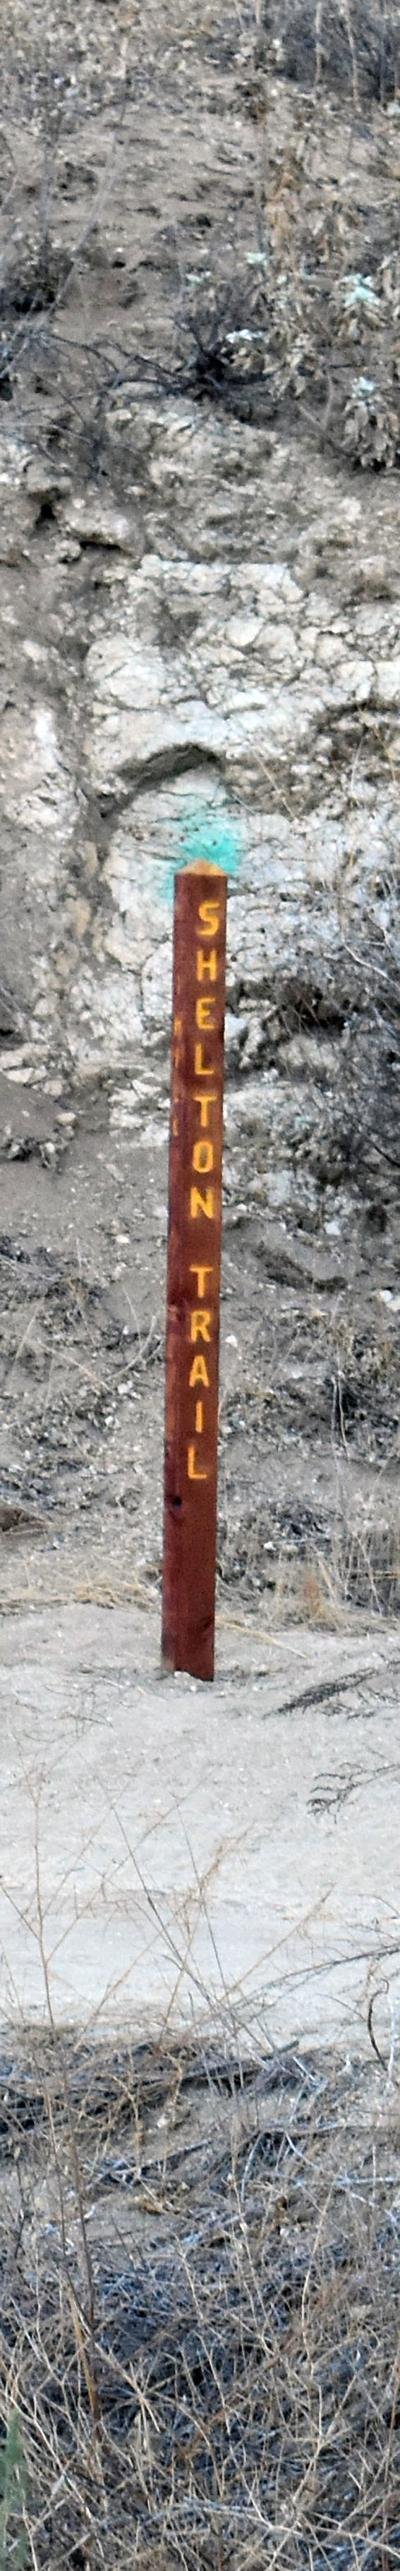 EAGLE TRAIL 1 mile marker